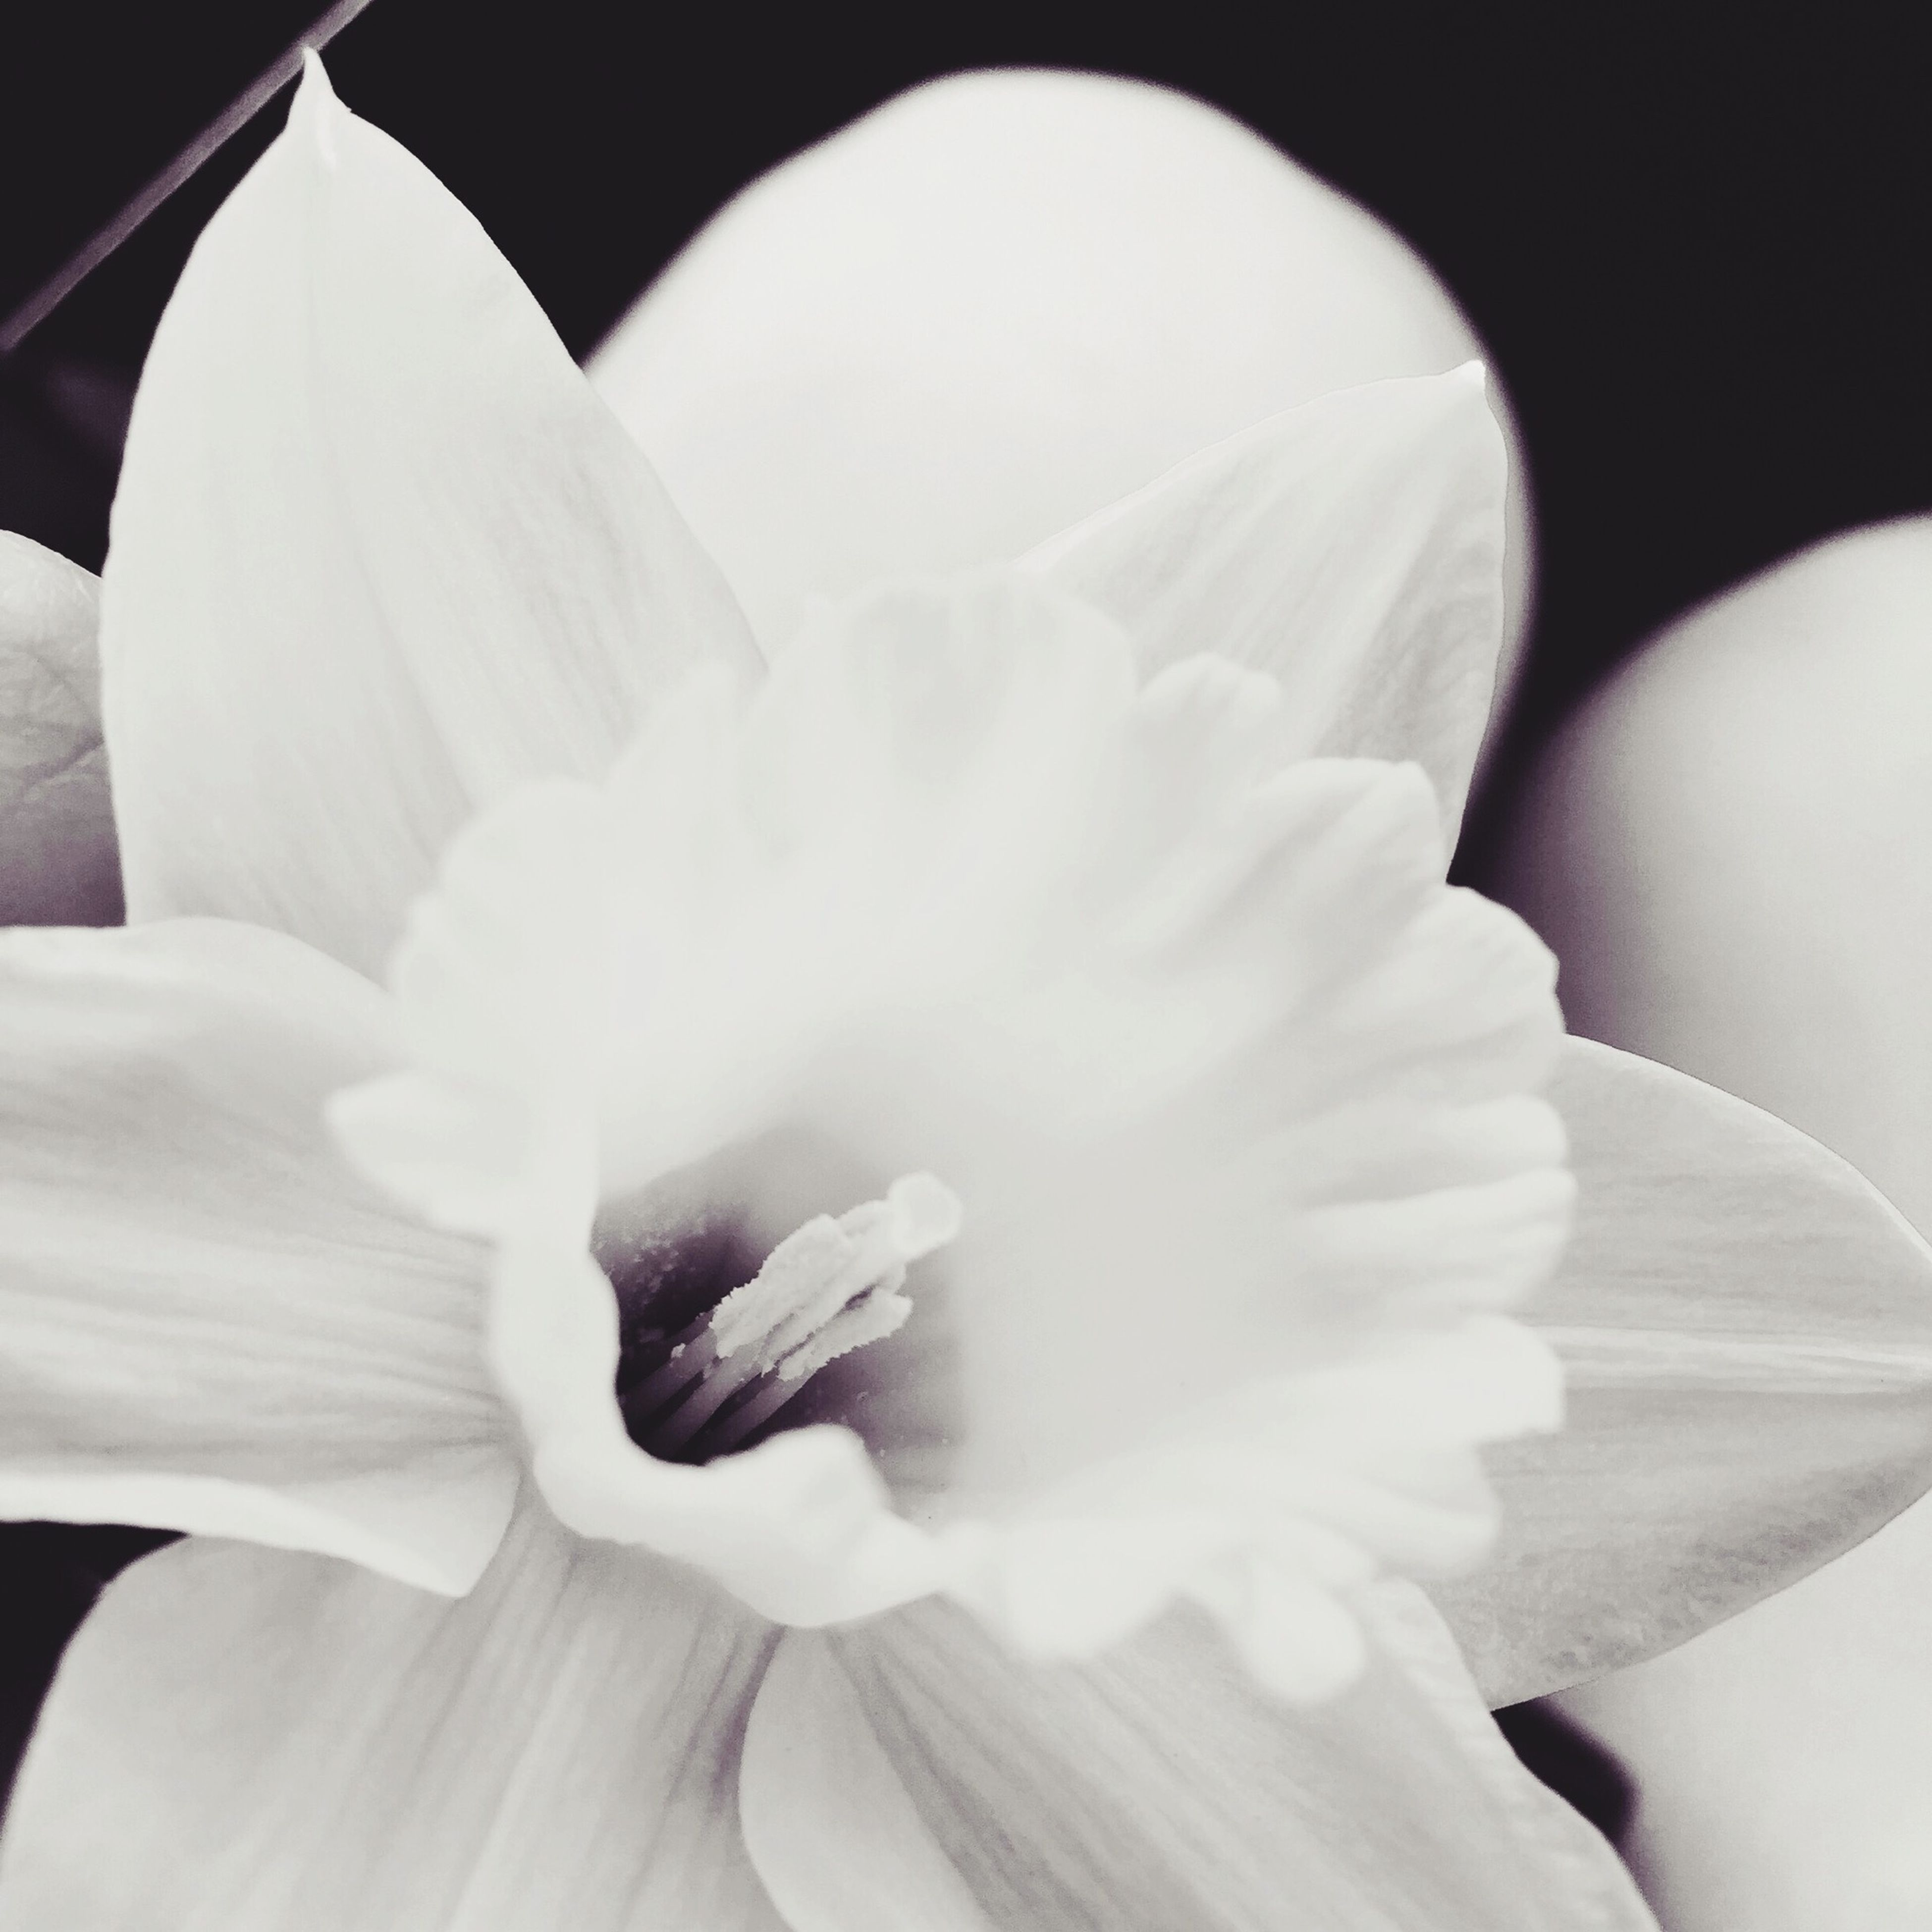 flower, petal, flower head, freshness, fragility, beauty in nature, close-up, growth, white color, nature, stamen, blooming, pollen, single flower, in bloom, blossom, bloom, white, botany, softness